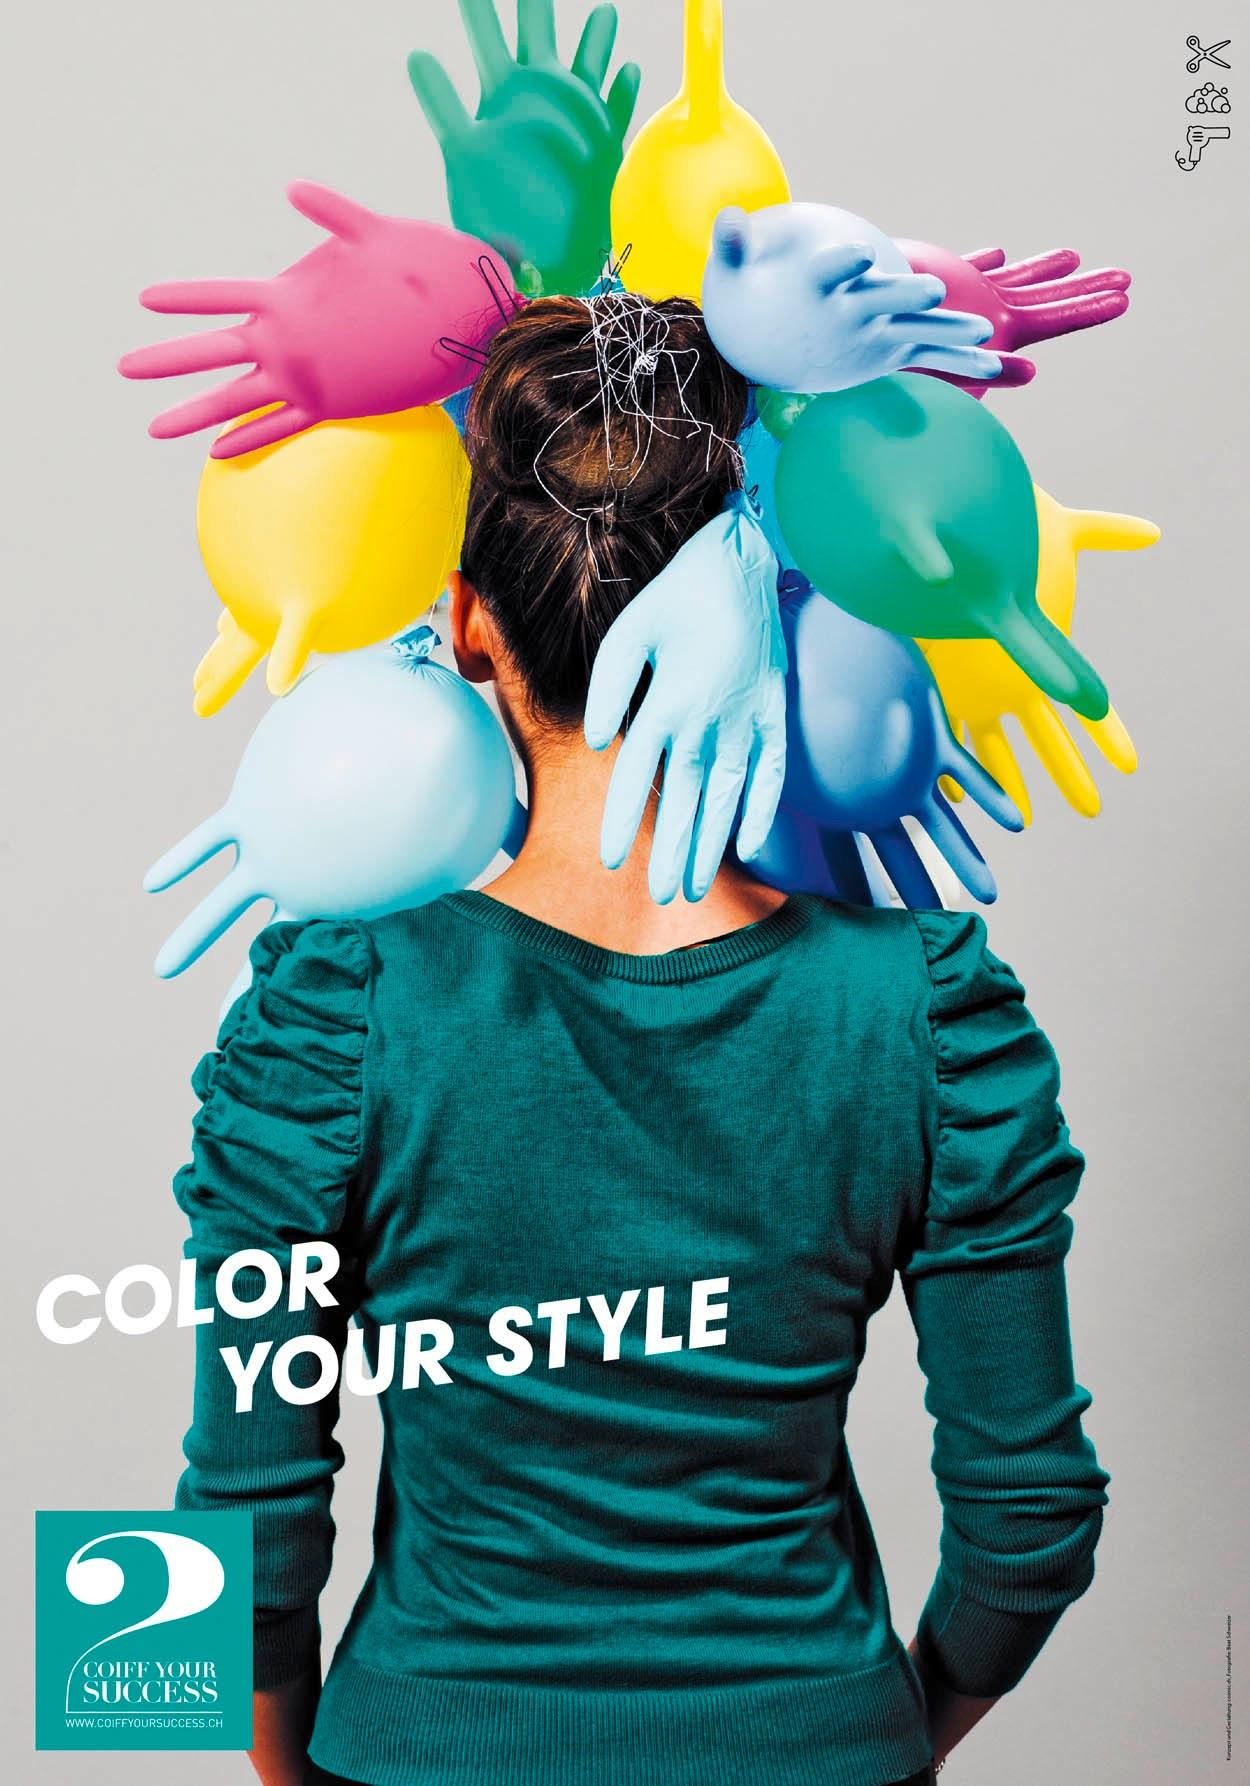 Coiff Your Success Print Ad -  Color your style